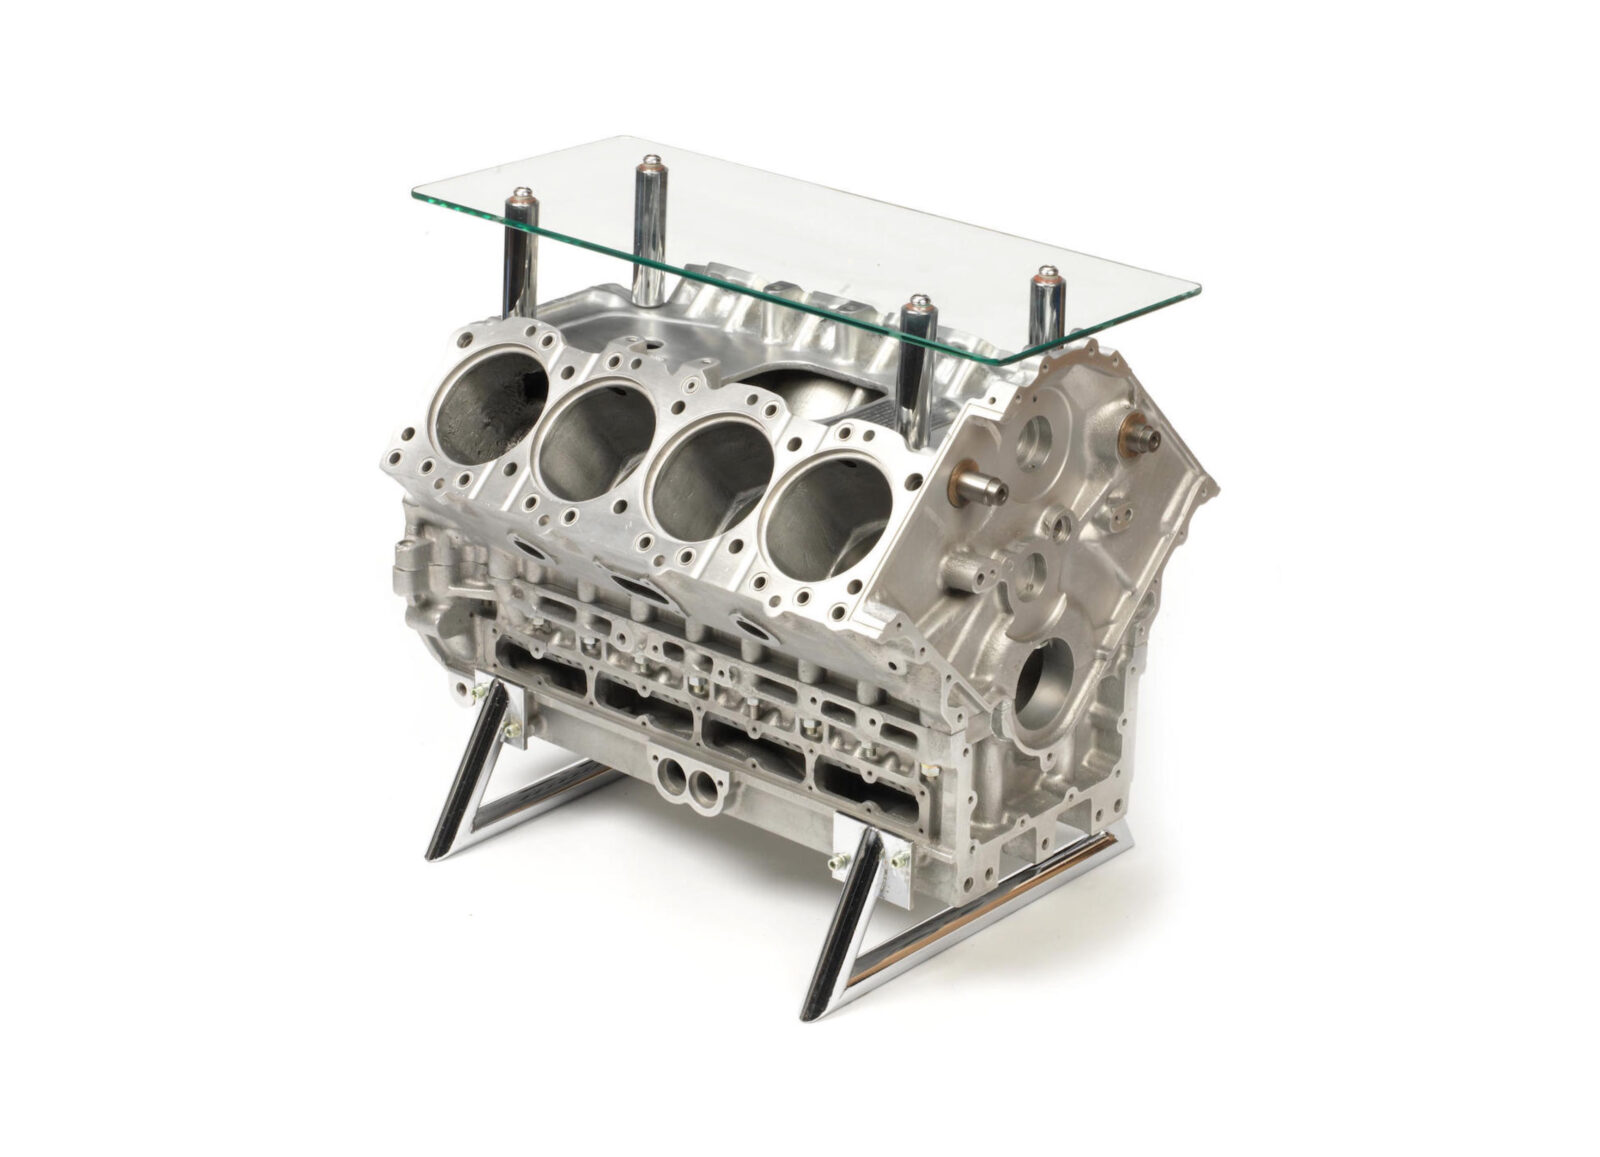 Ford DFV 919 Engine Block Coffee Table 1600x1157 - McLaren Ford DFV 919 Engine Block Coffee Table